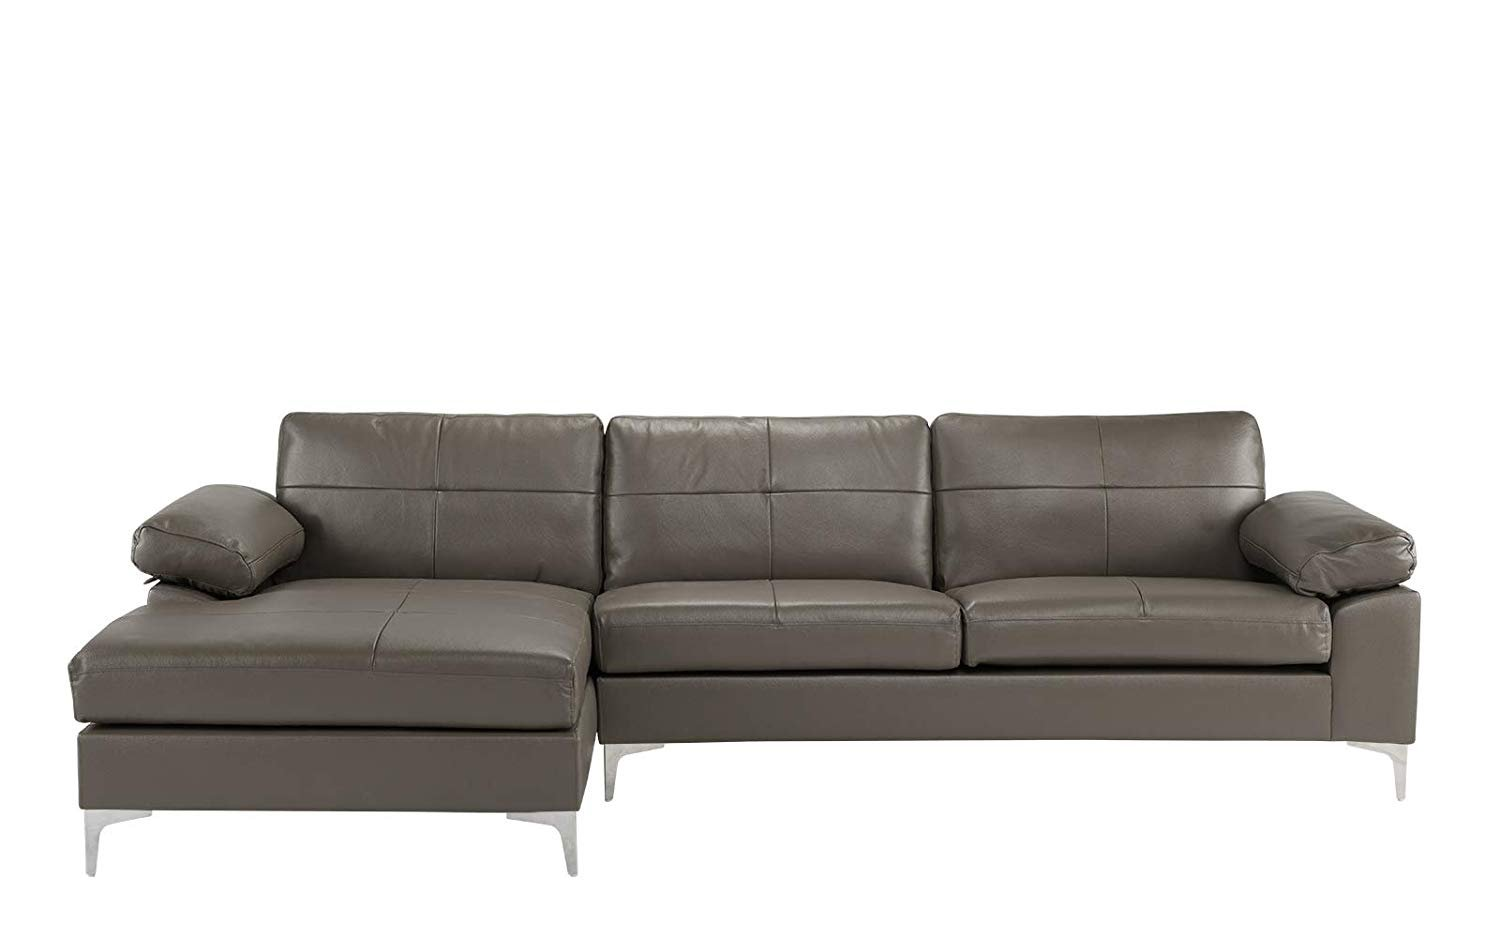 Ebay Sofa Grey Details About Leather Sofa Sectional L Shape Couch With Chaise Grey